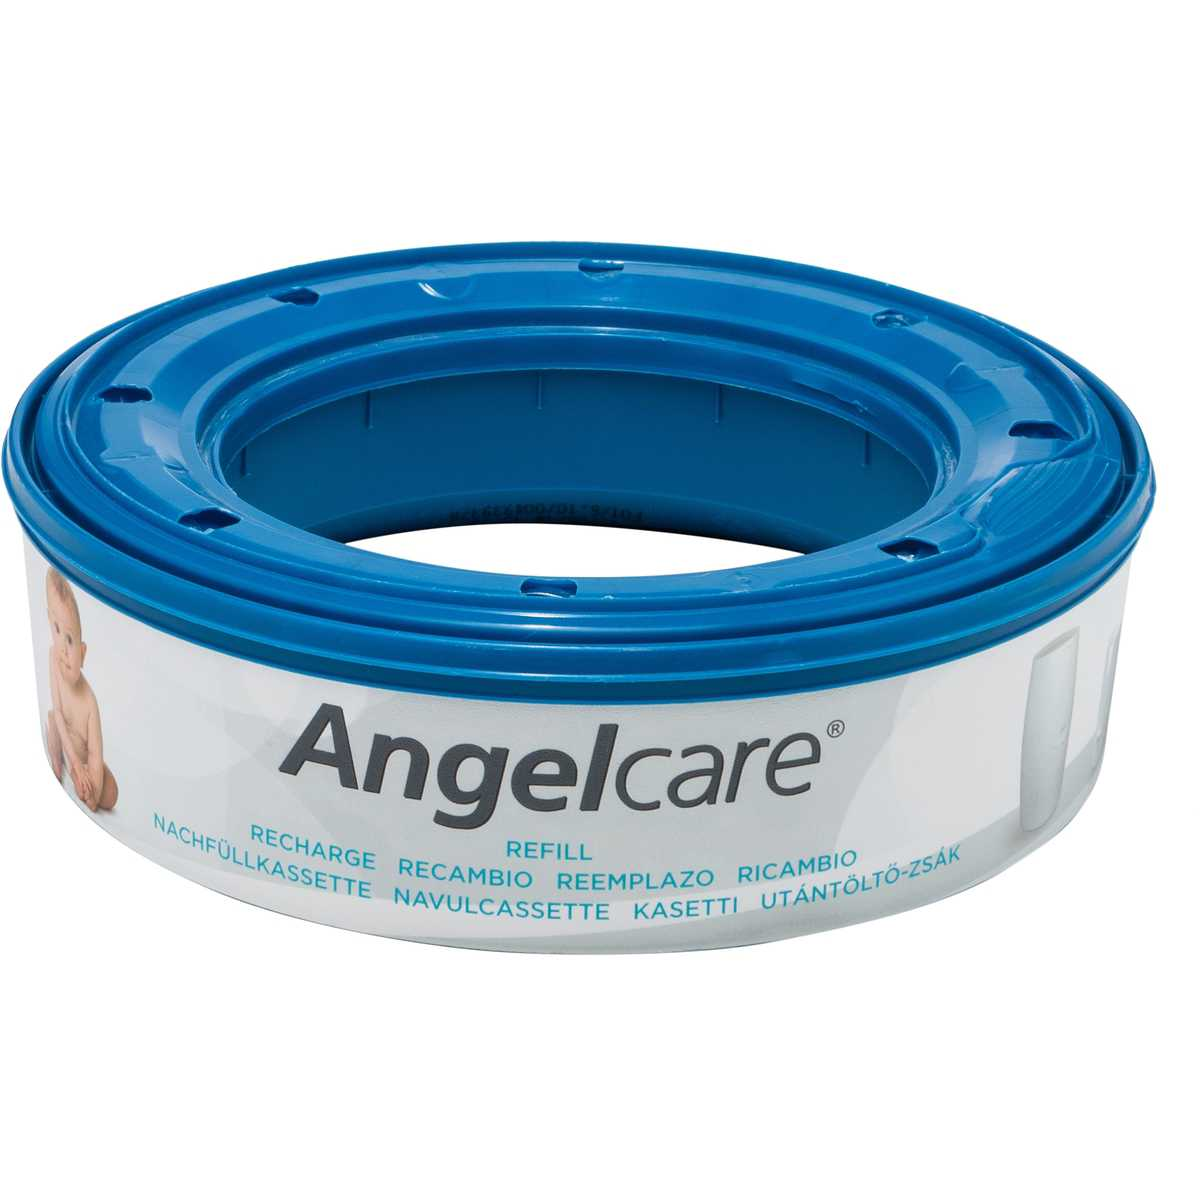 angelcare recharge